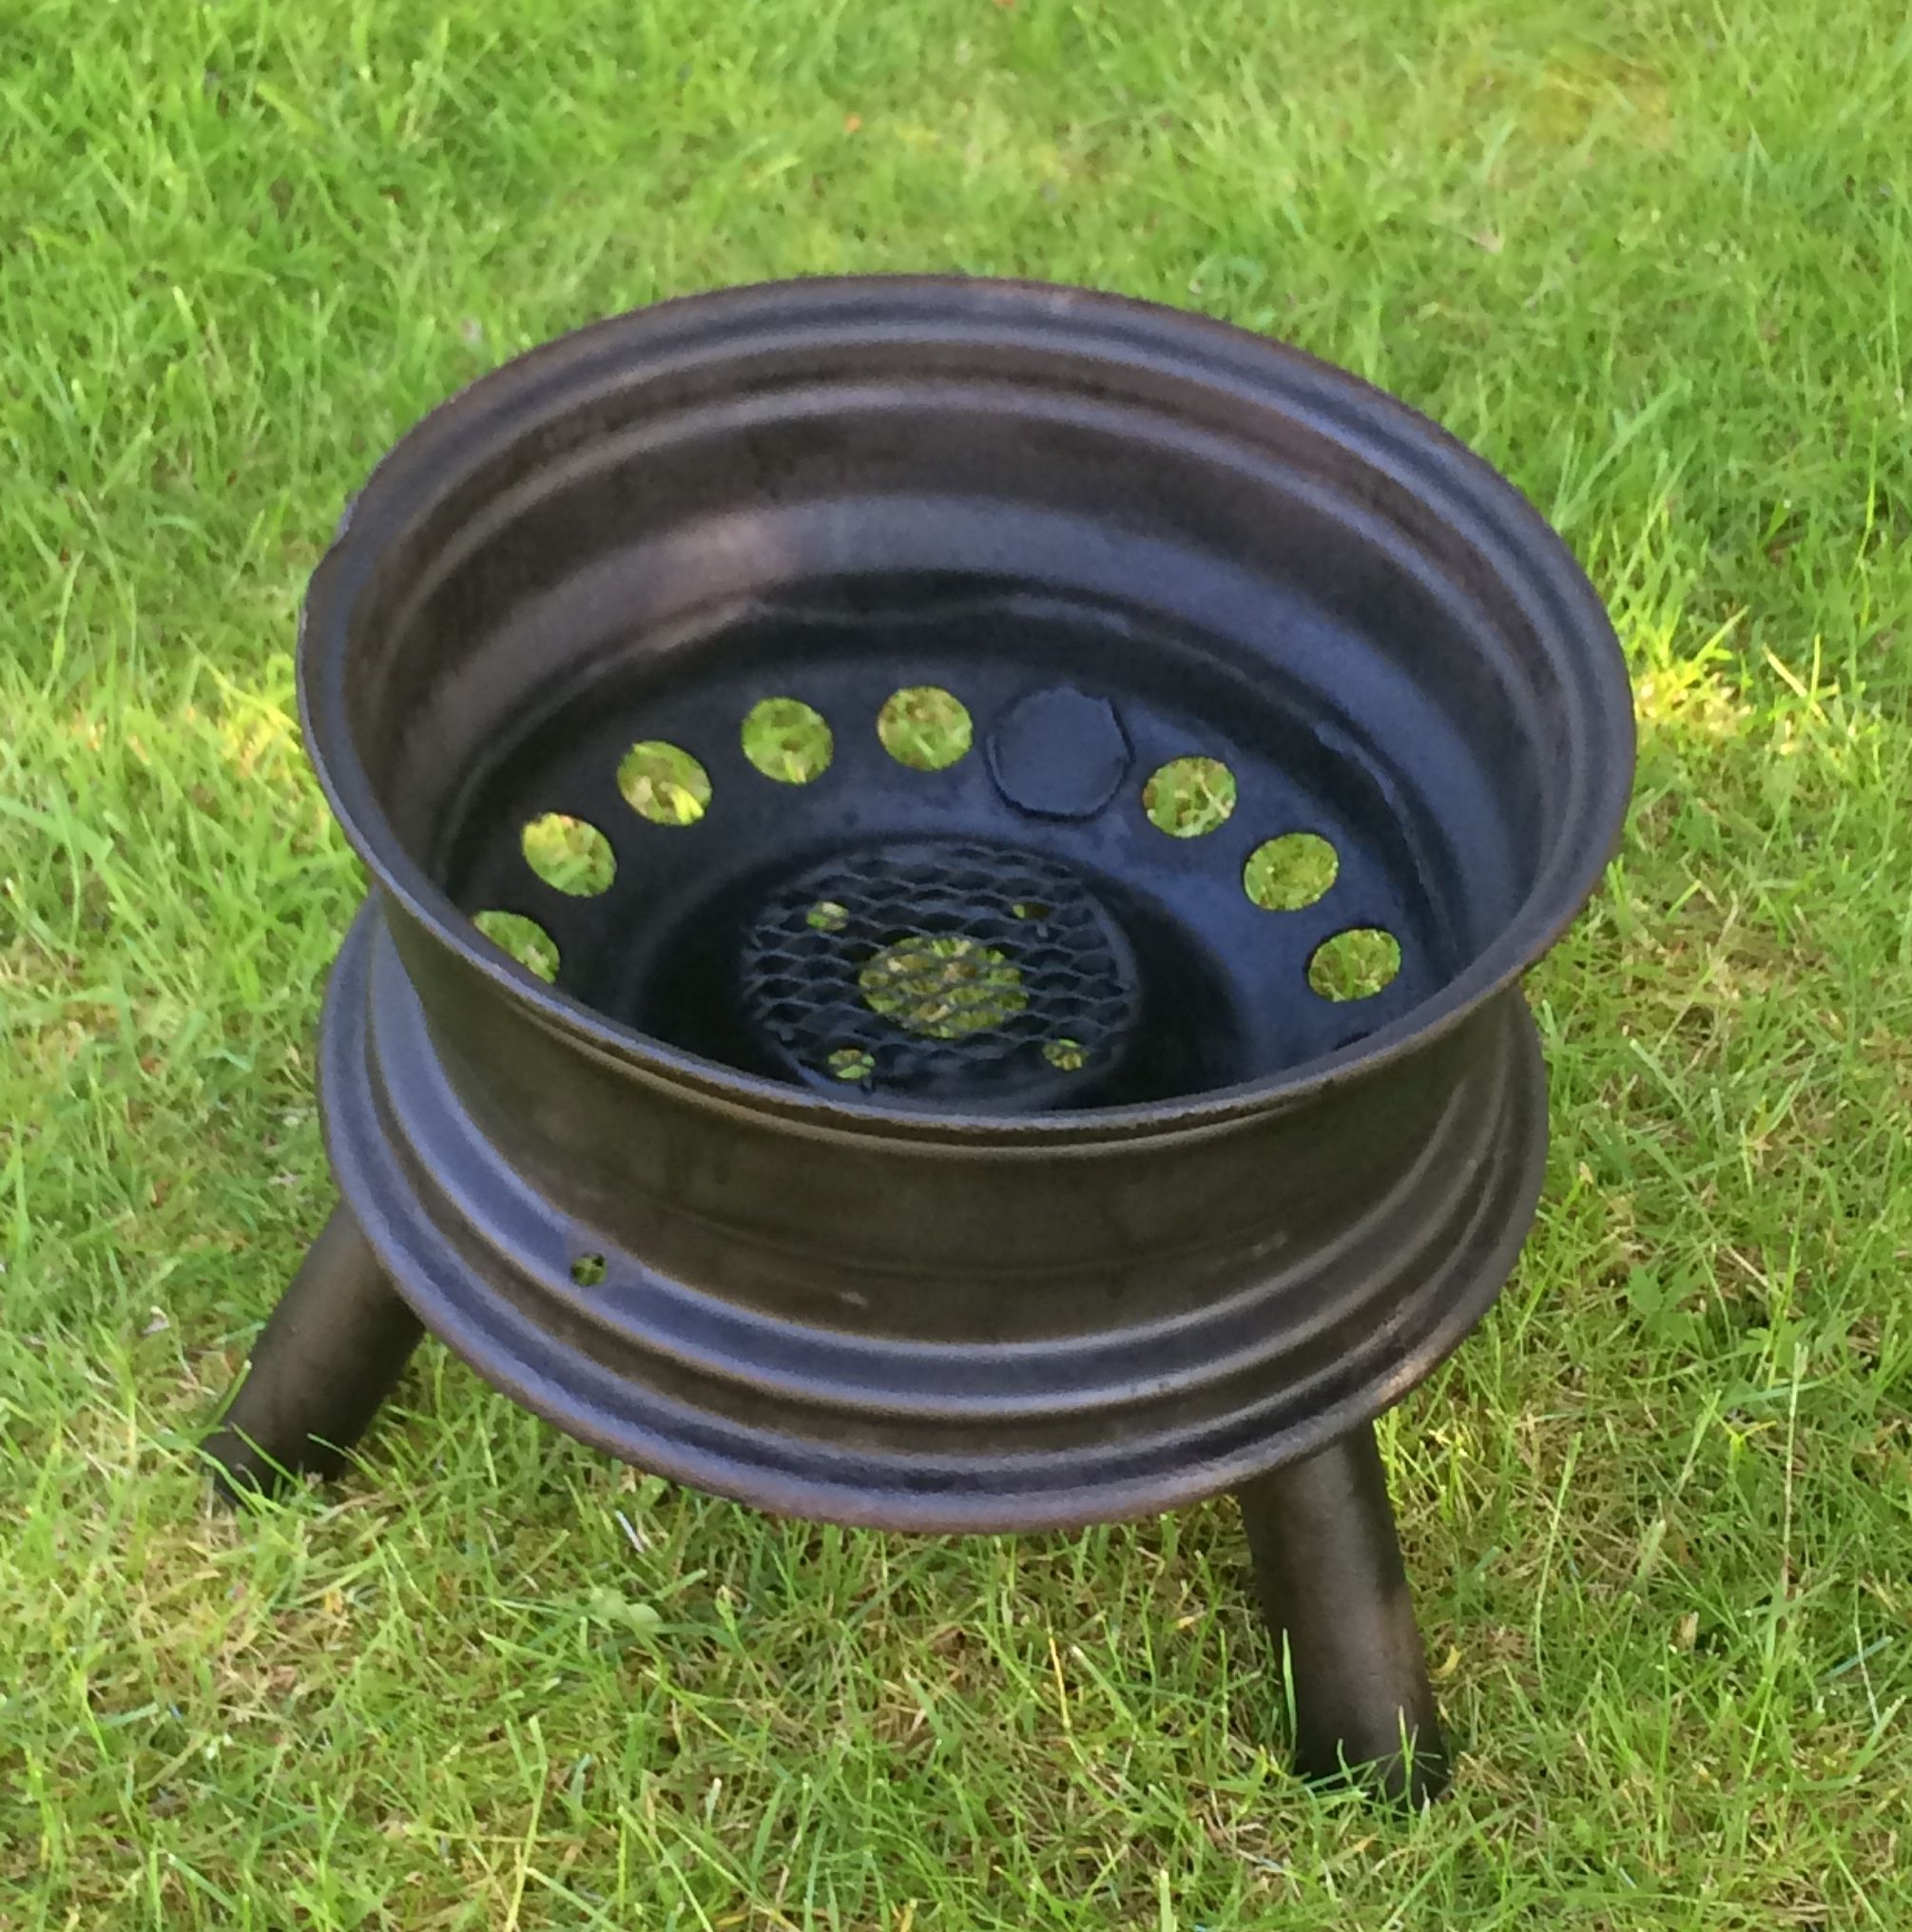 Portable Outdoor Fire Pit With Wheels Wheel Fire Pit Wood Fire Pit Portable Fire Pits